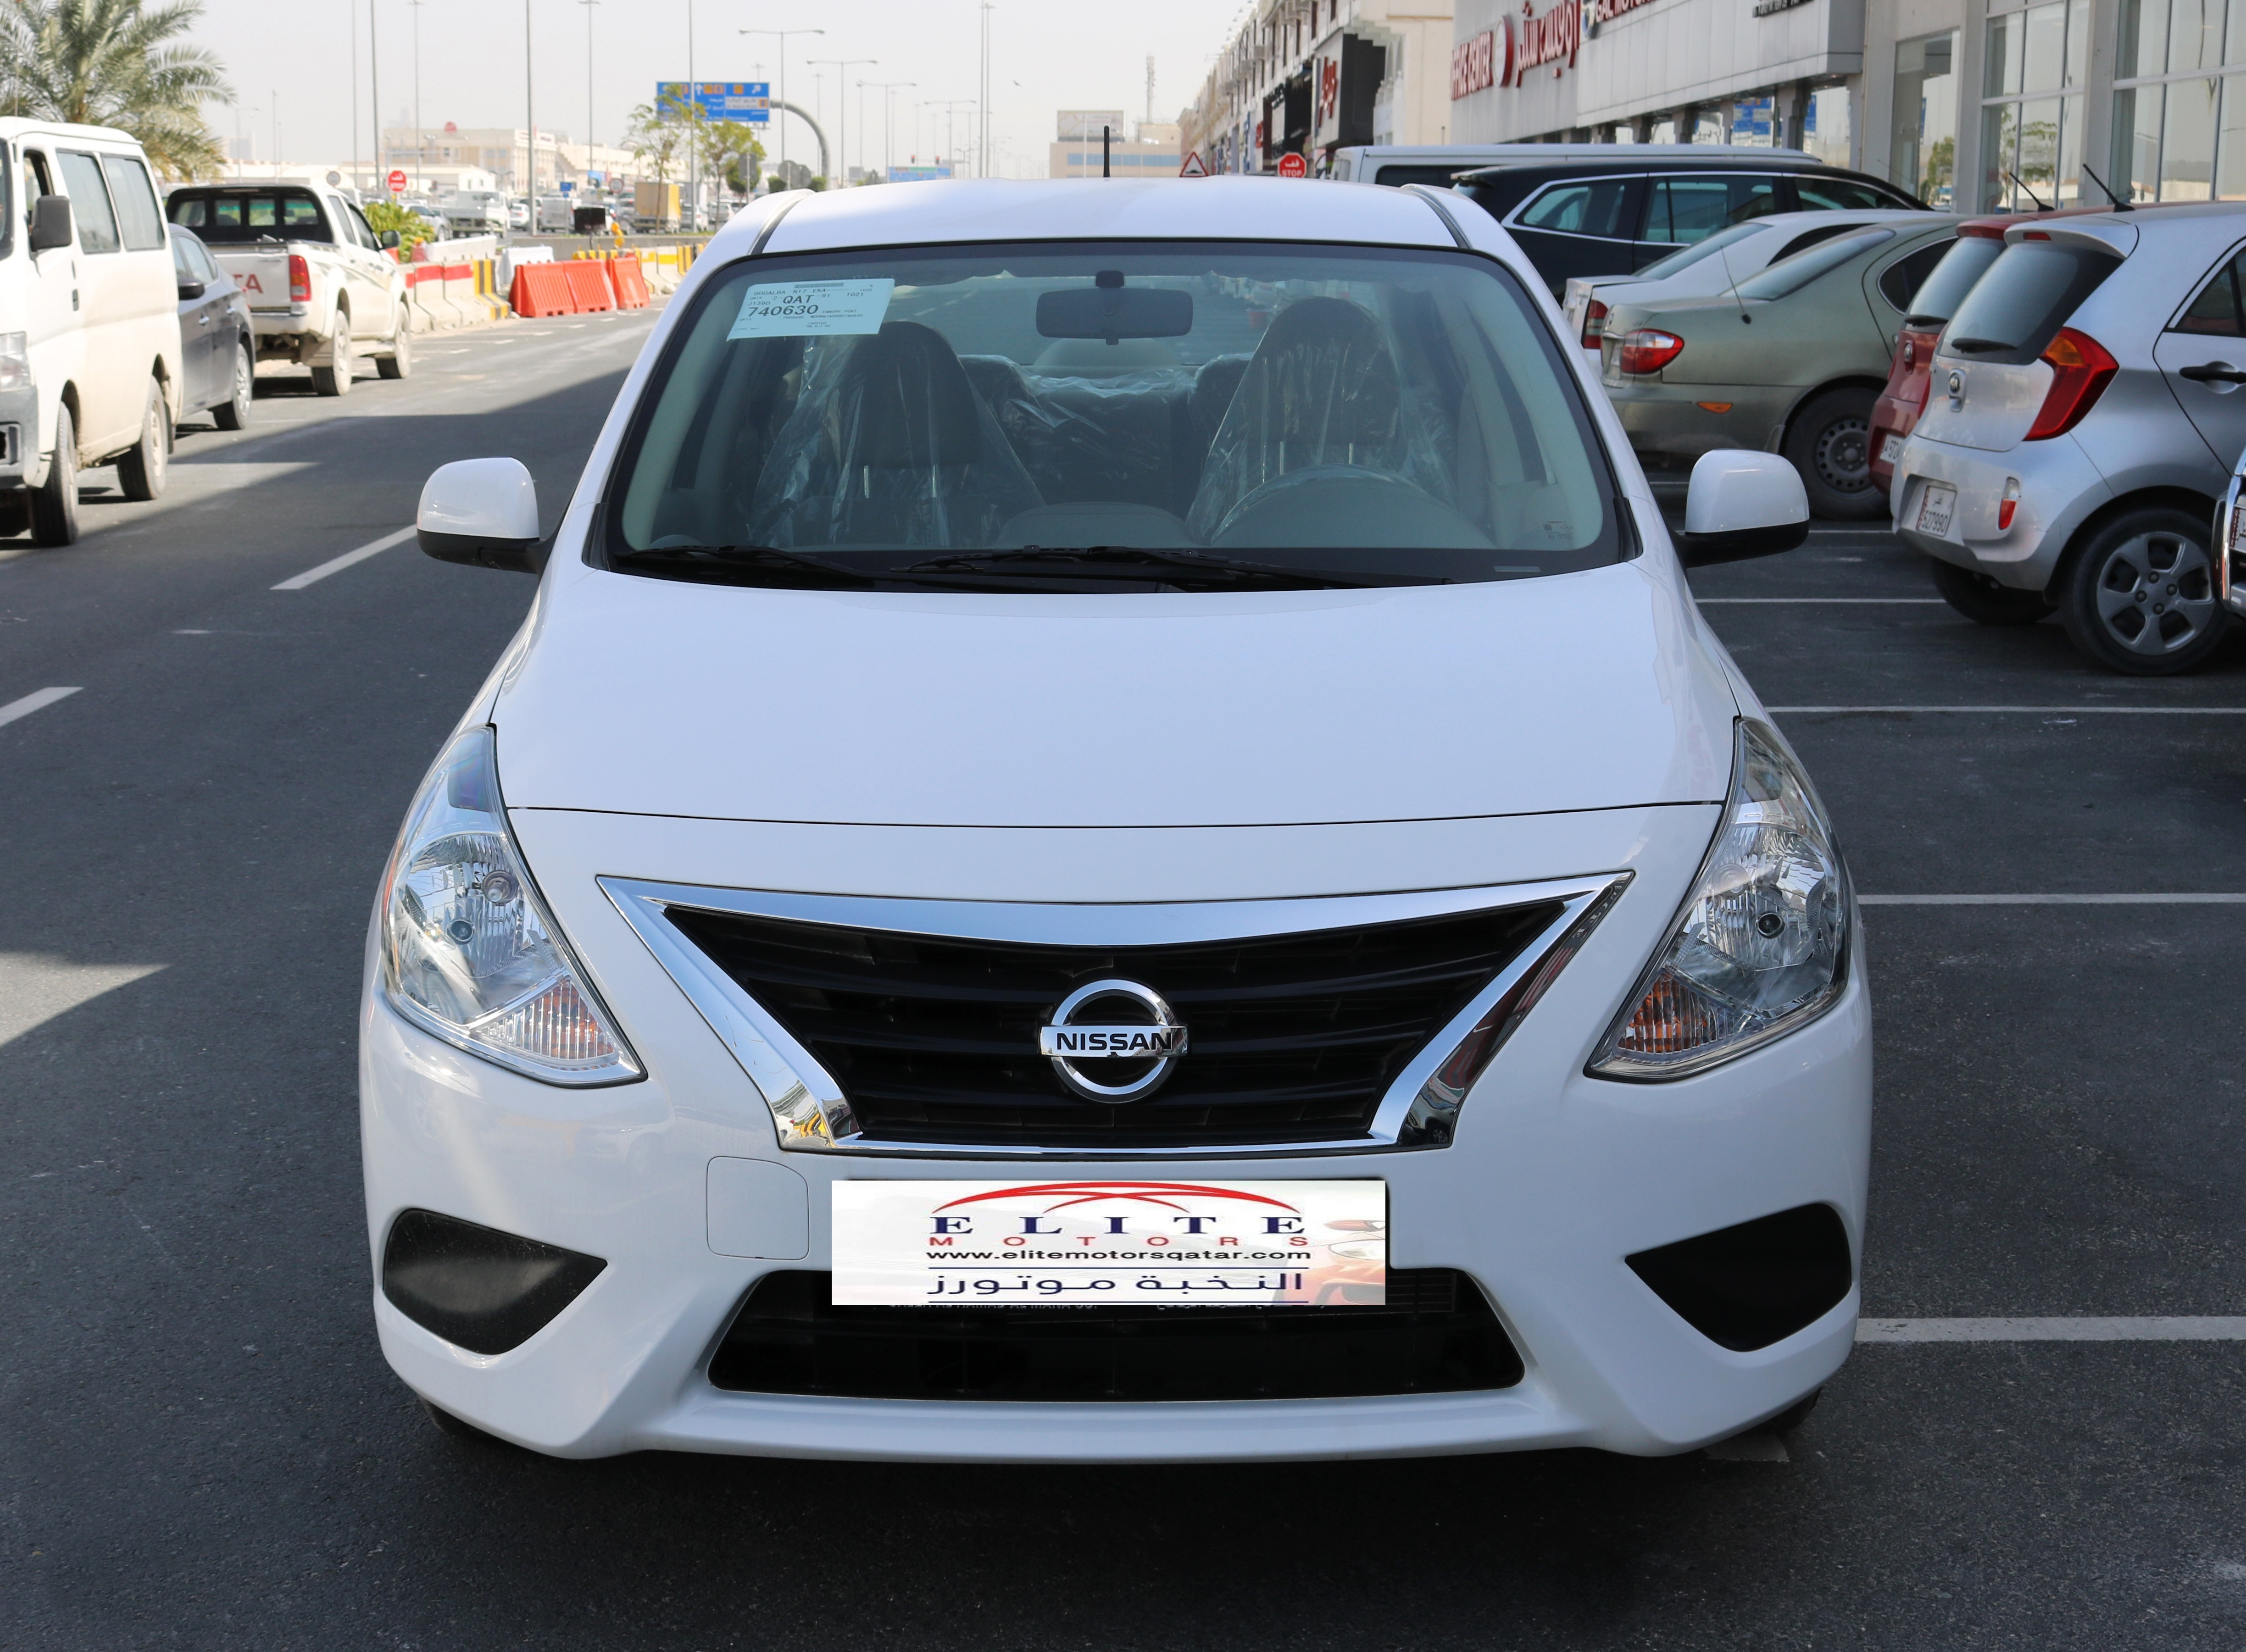 Nissan Sunny Used Car For Sale In Uae